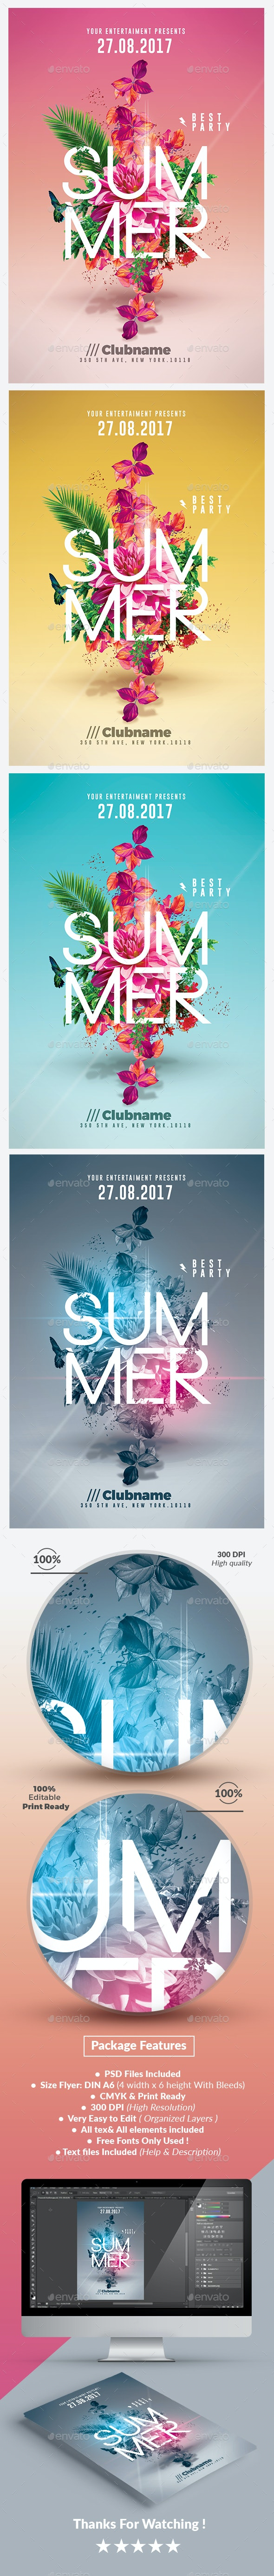 Summer Party    Psd Flyer Templates - Events Flyers